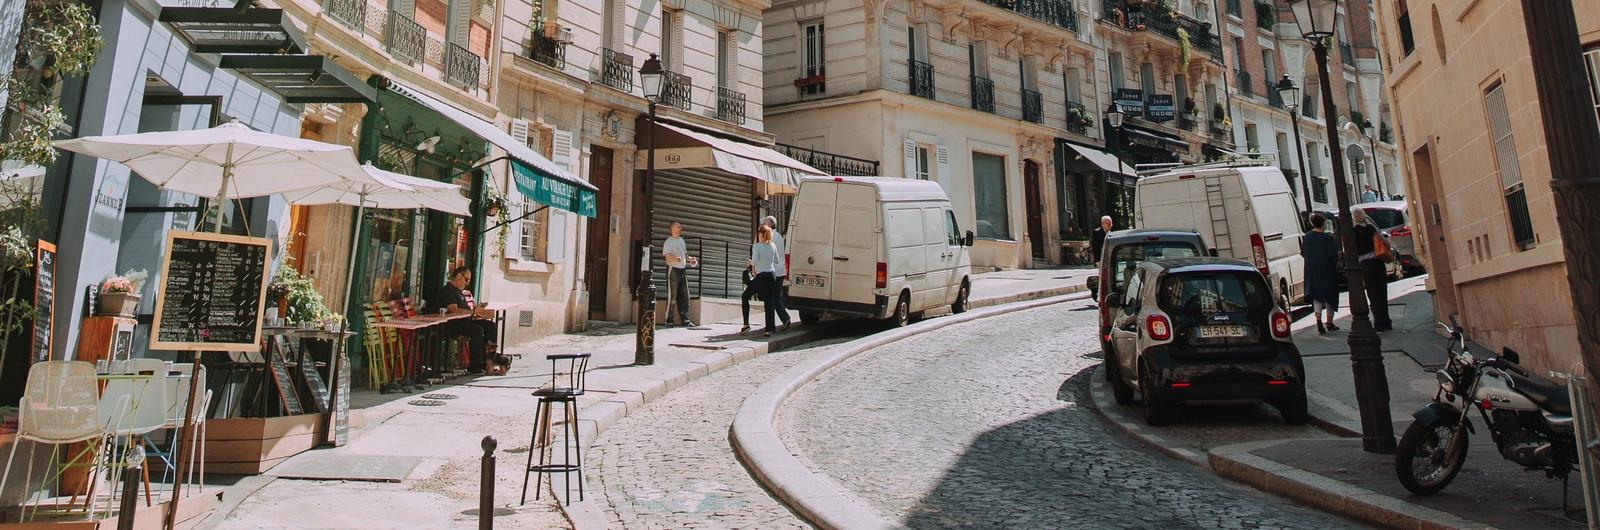 city header france street sunny